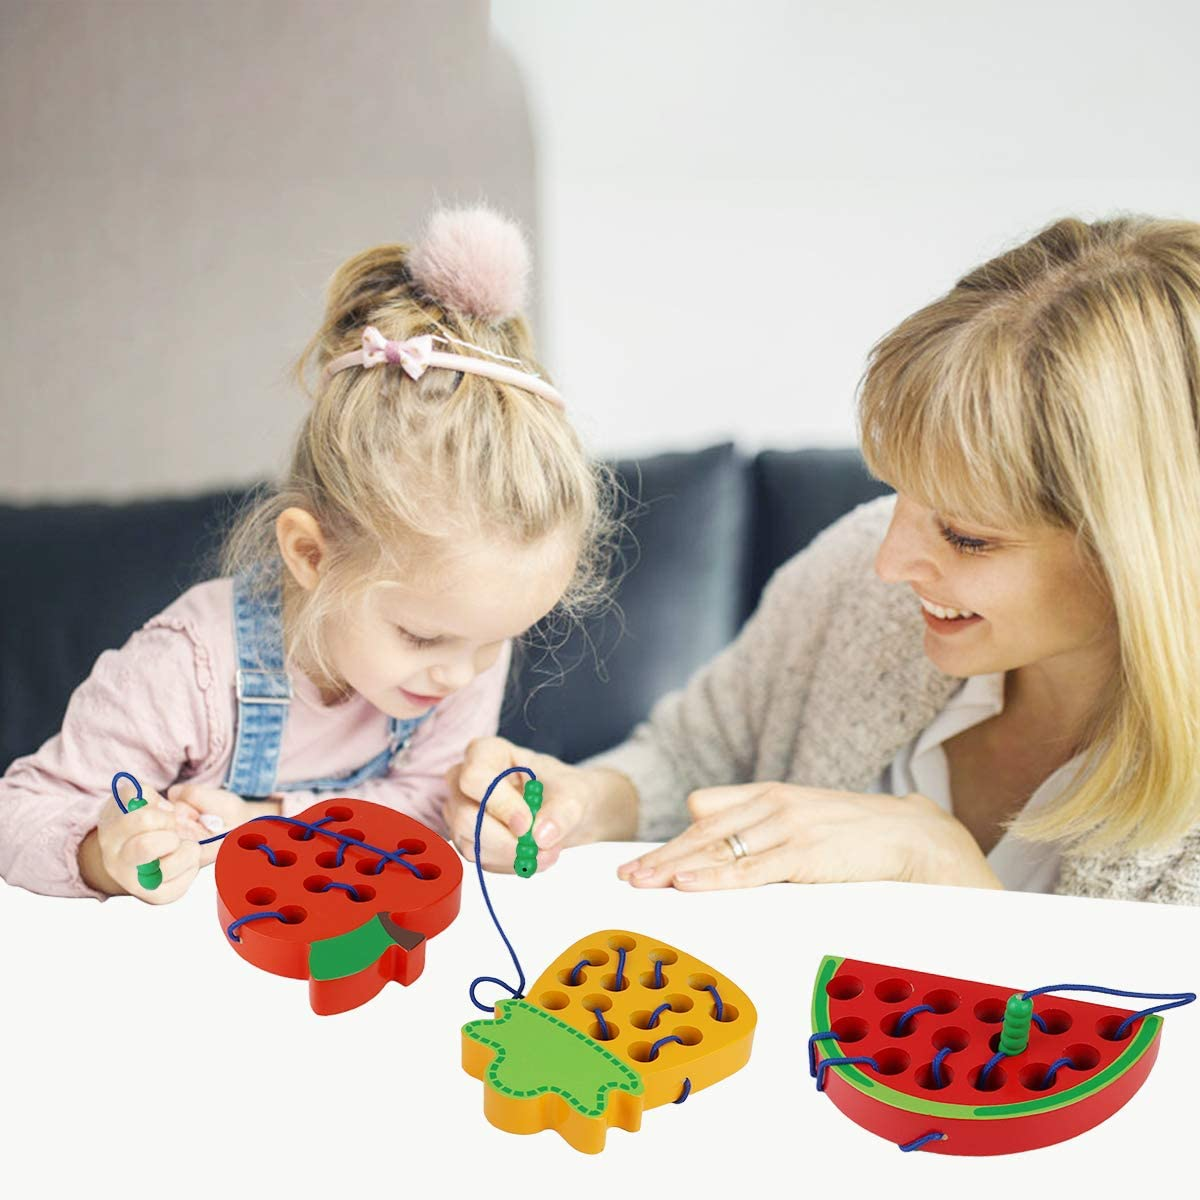 Aitey Lacing Toy for Toddlers Apple Watermelon Pineapple Wooden Threading Toys Educational Learning Fine Motor Skill Toys Car Plane Travel Games for 2 3 4 Years Old Kids Boys and Girls